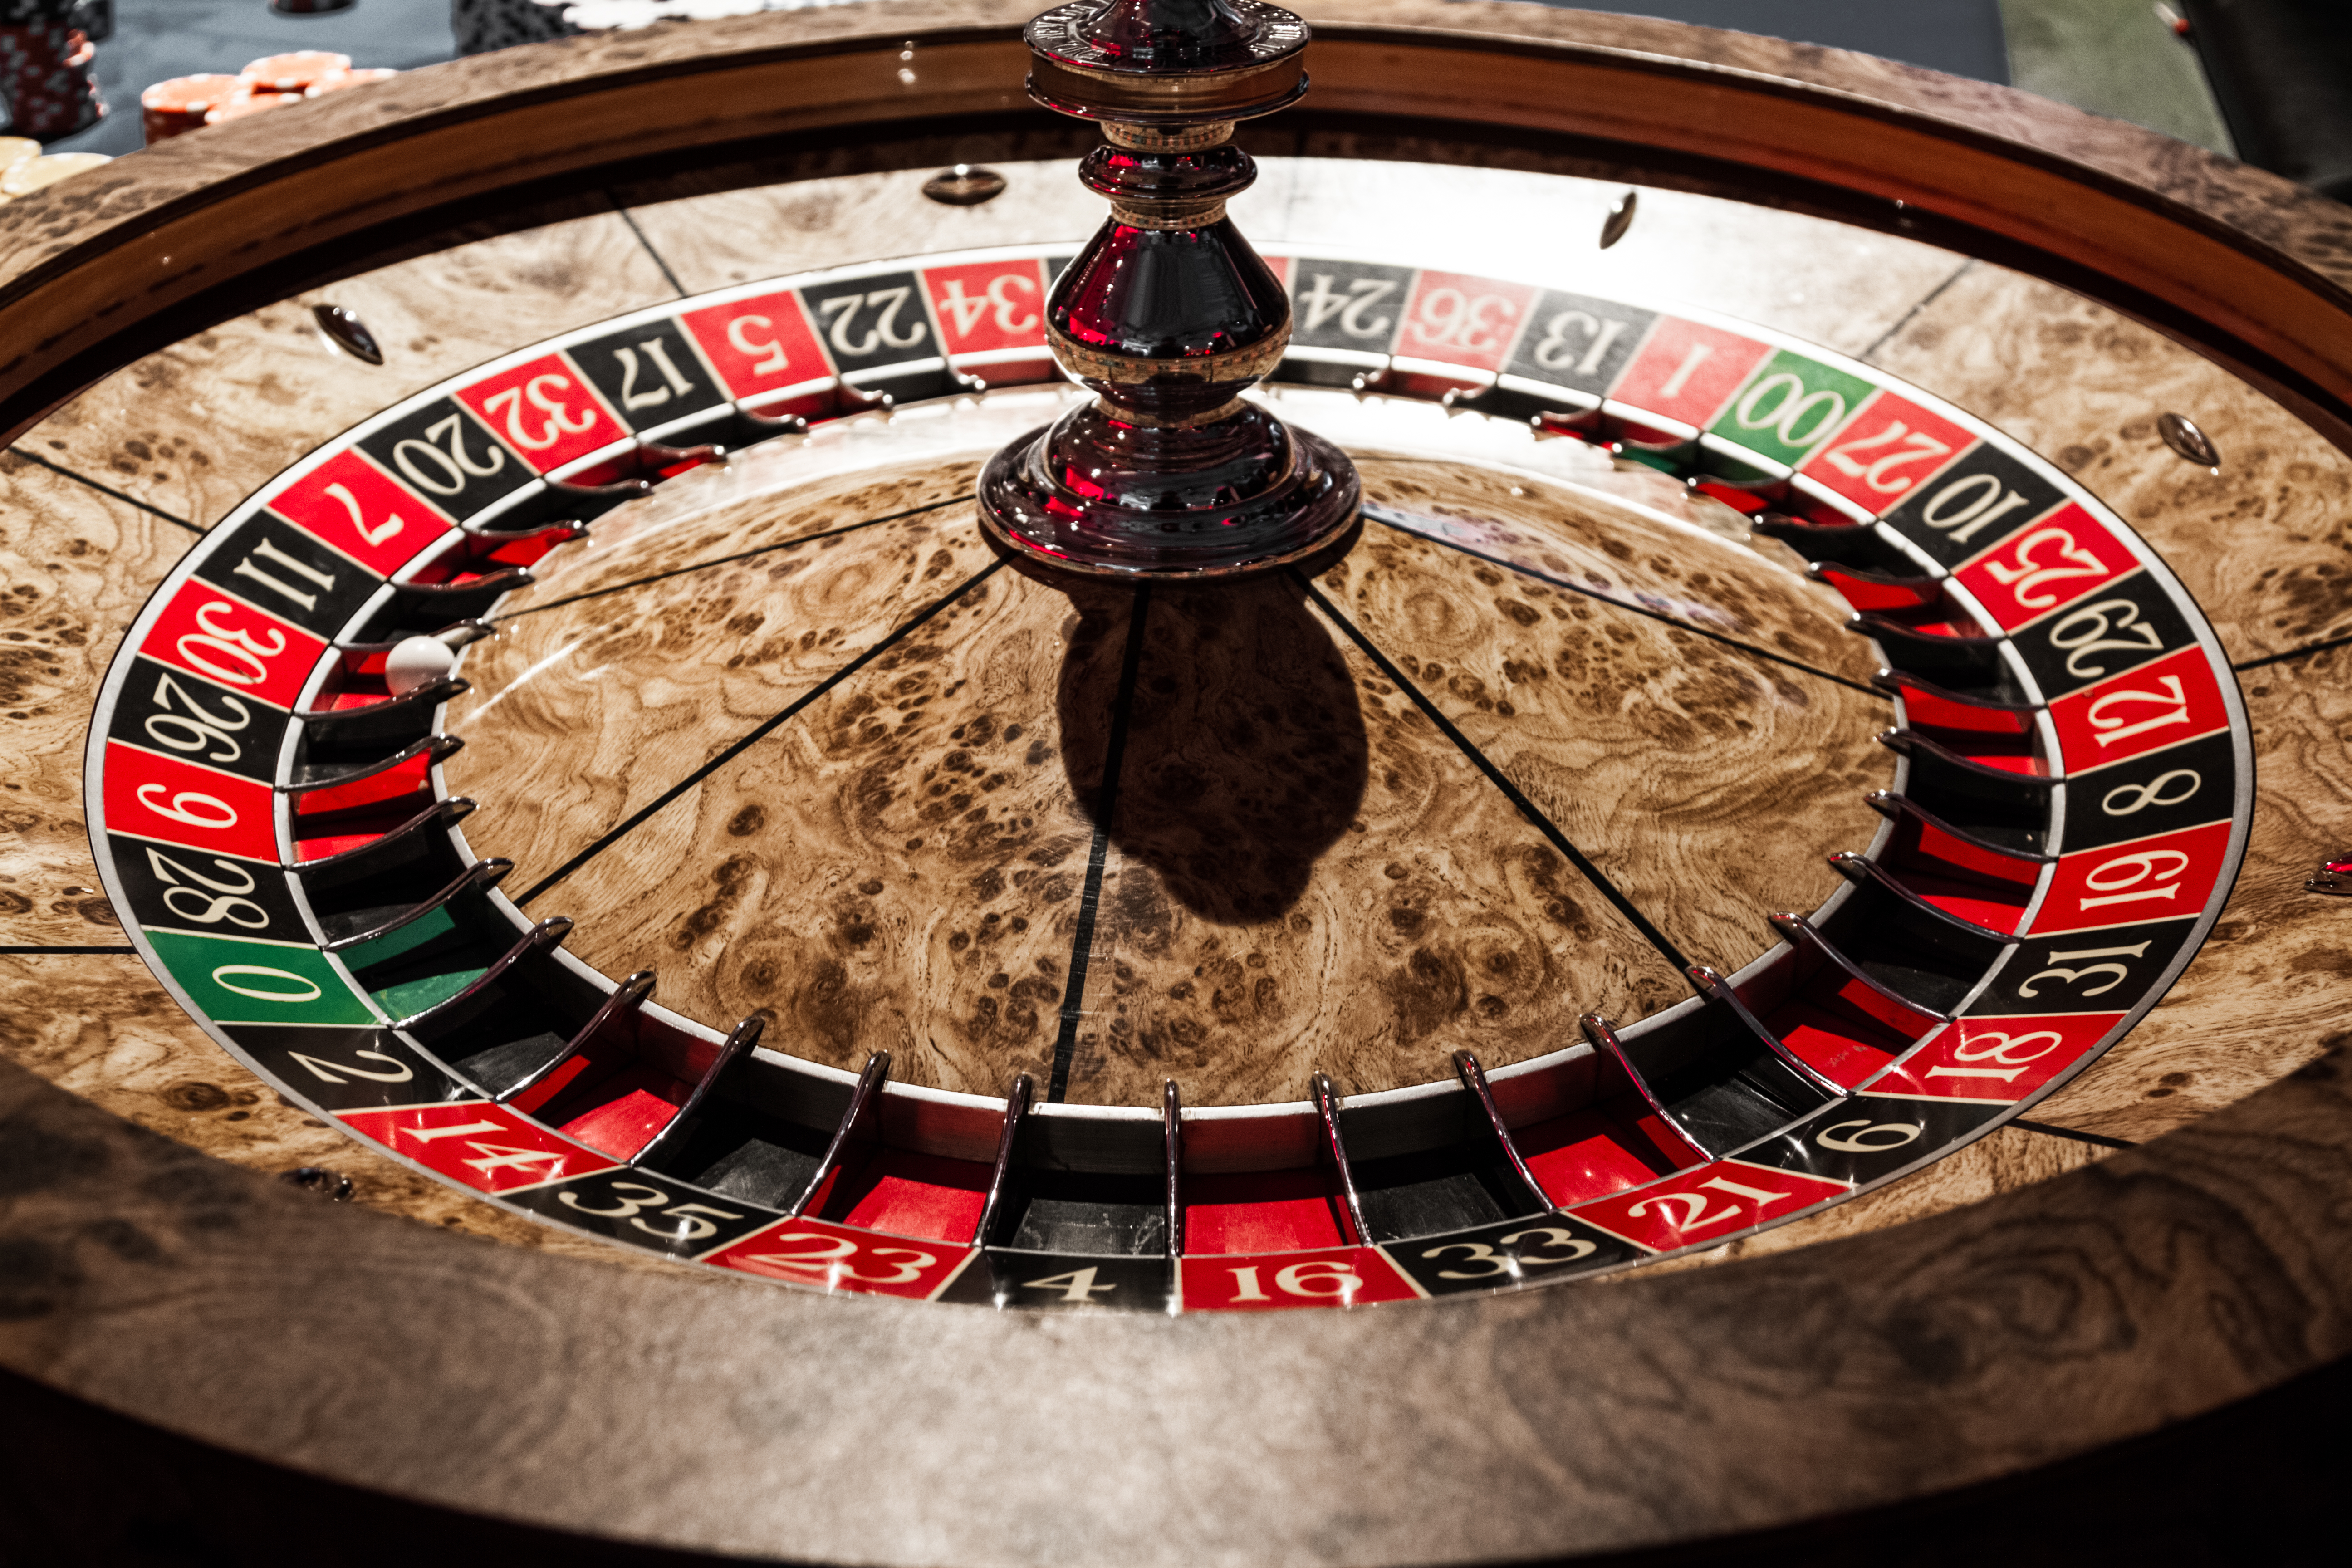 Classy Wooden Shiny Roulette Details in a Casino